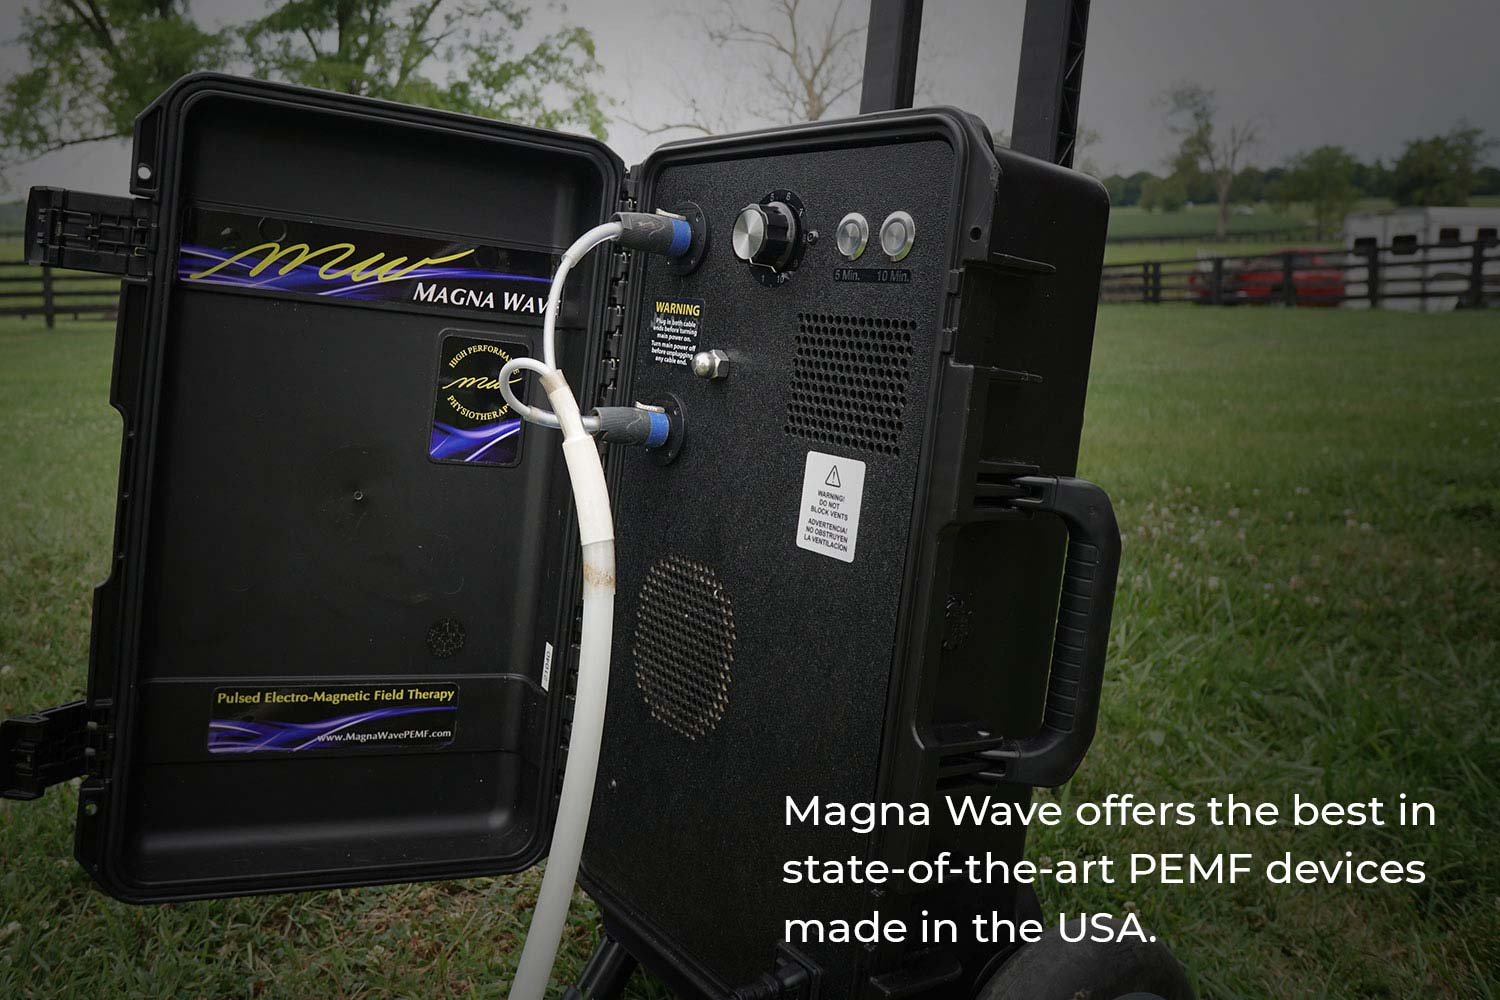 Magna Wave offers the best in state-of-the-art PEMF devices made in the USA.